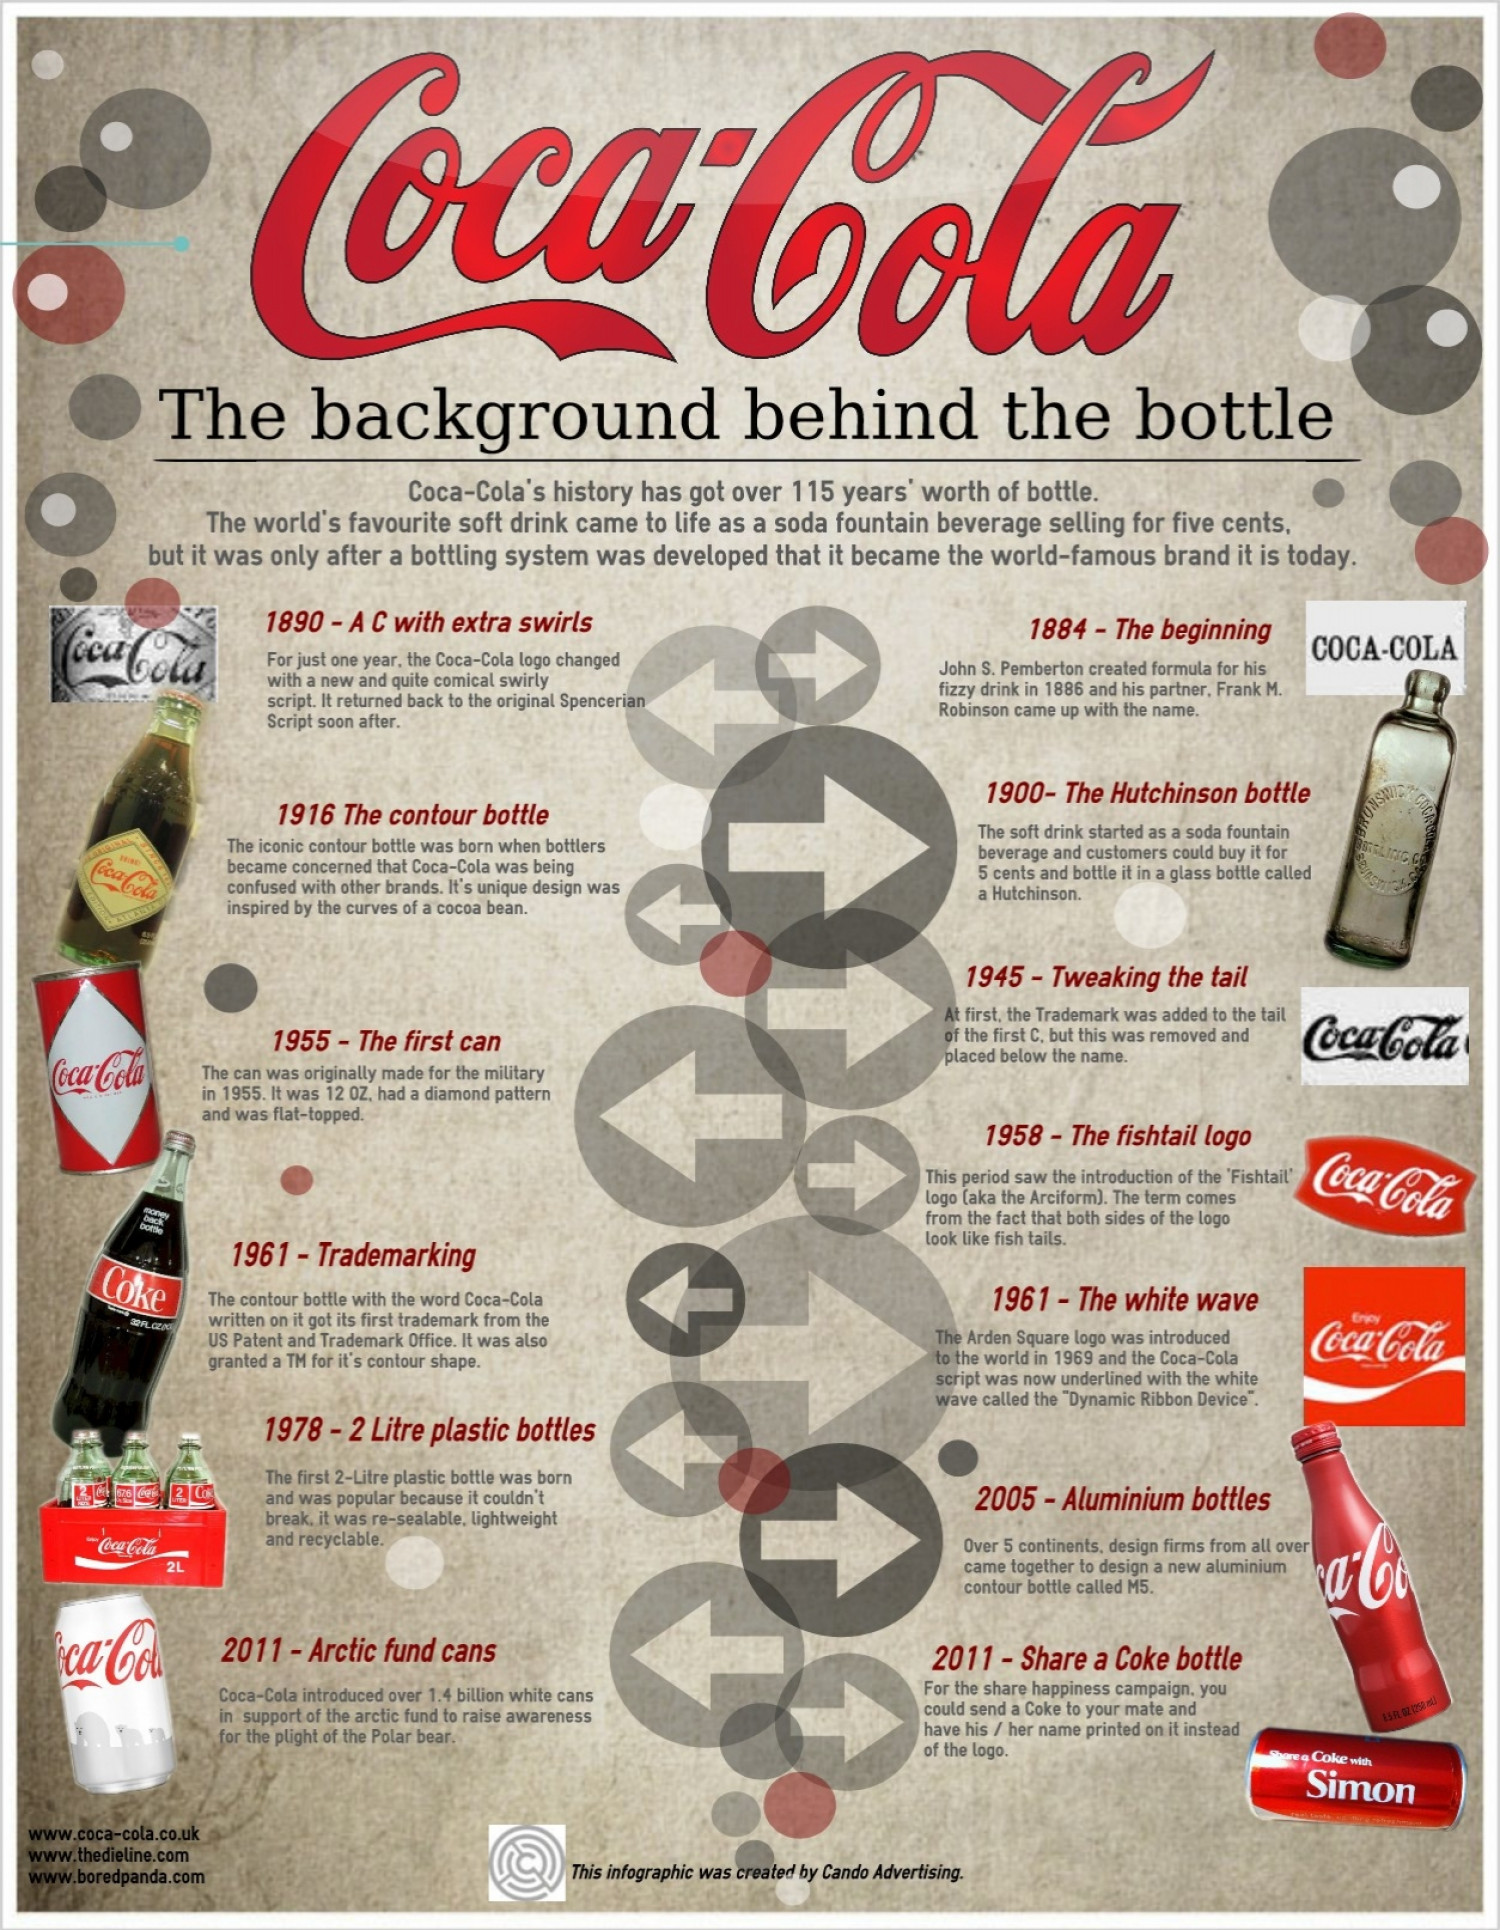 history and description of coca cola Visit wwwcoca-colacompanycom for more information on the coca-cola  company's history, products, sustainability initiatives and much more if you are a .